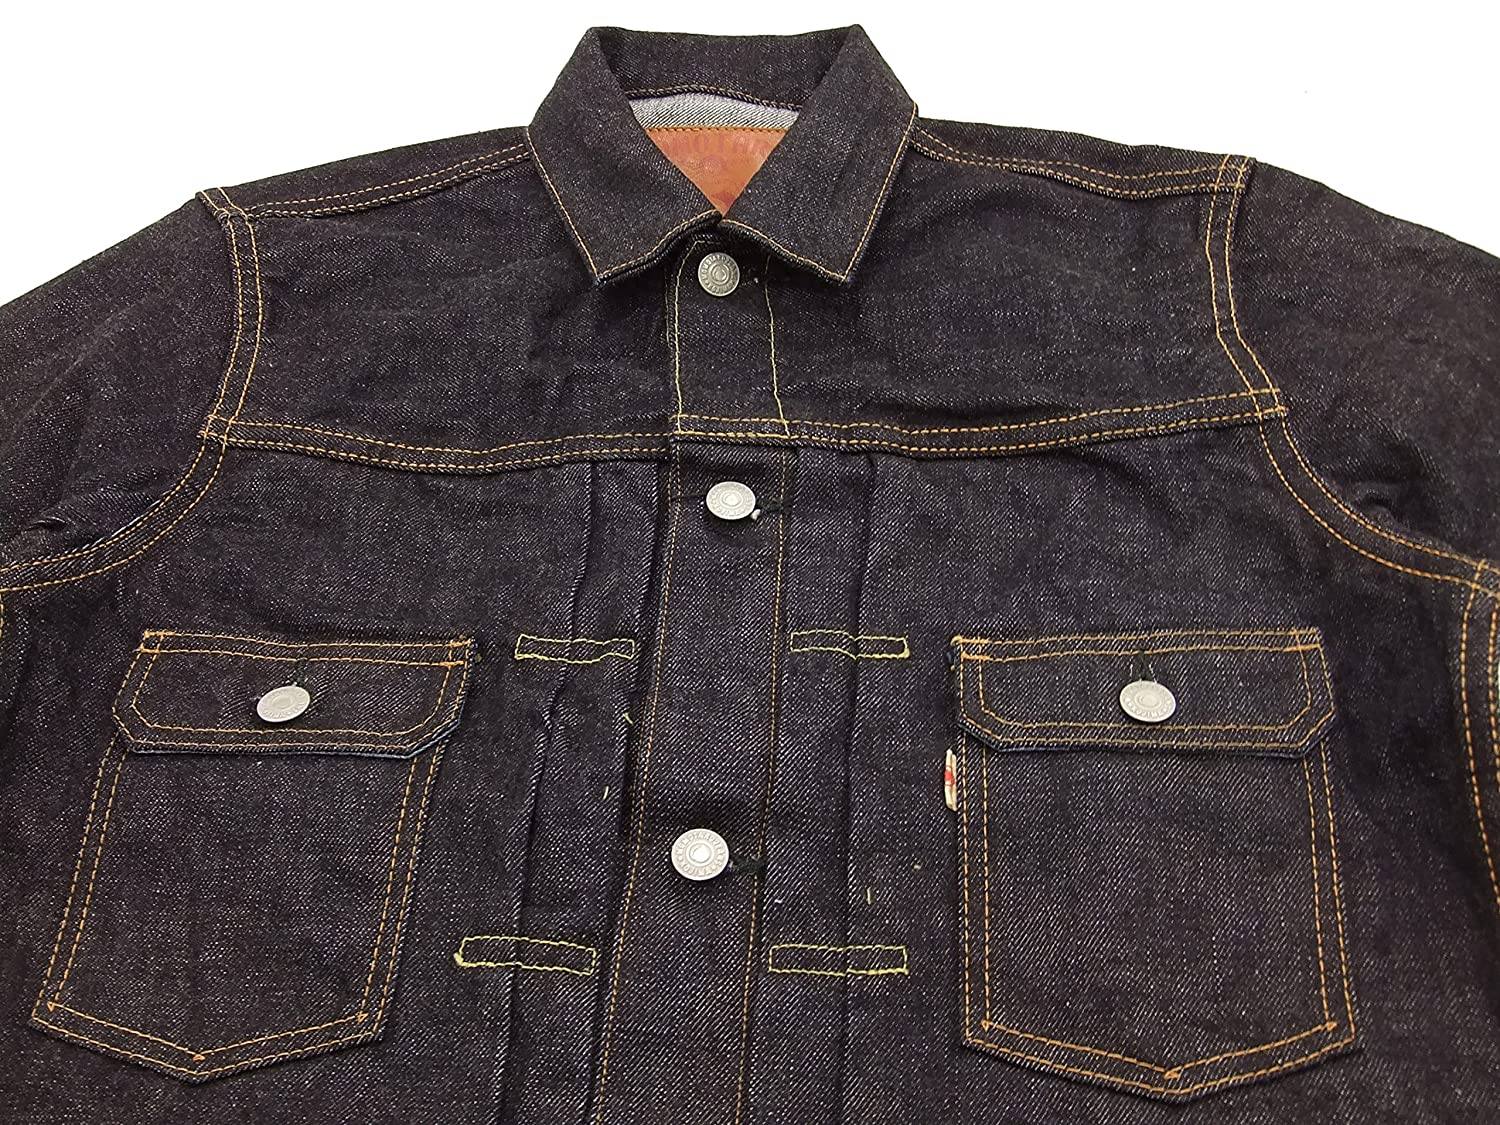 ecb032affa5 Momotaro Jeans 2105SP Men s Slim Fit Rinsed Denim Trucker Jacket With  Stripe at Amazon Men s Clothing store